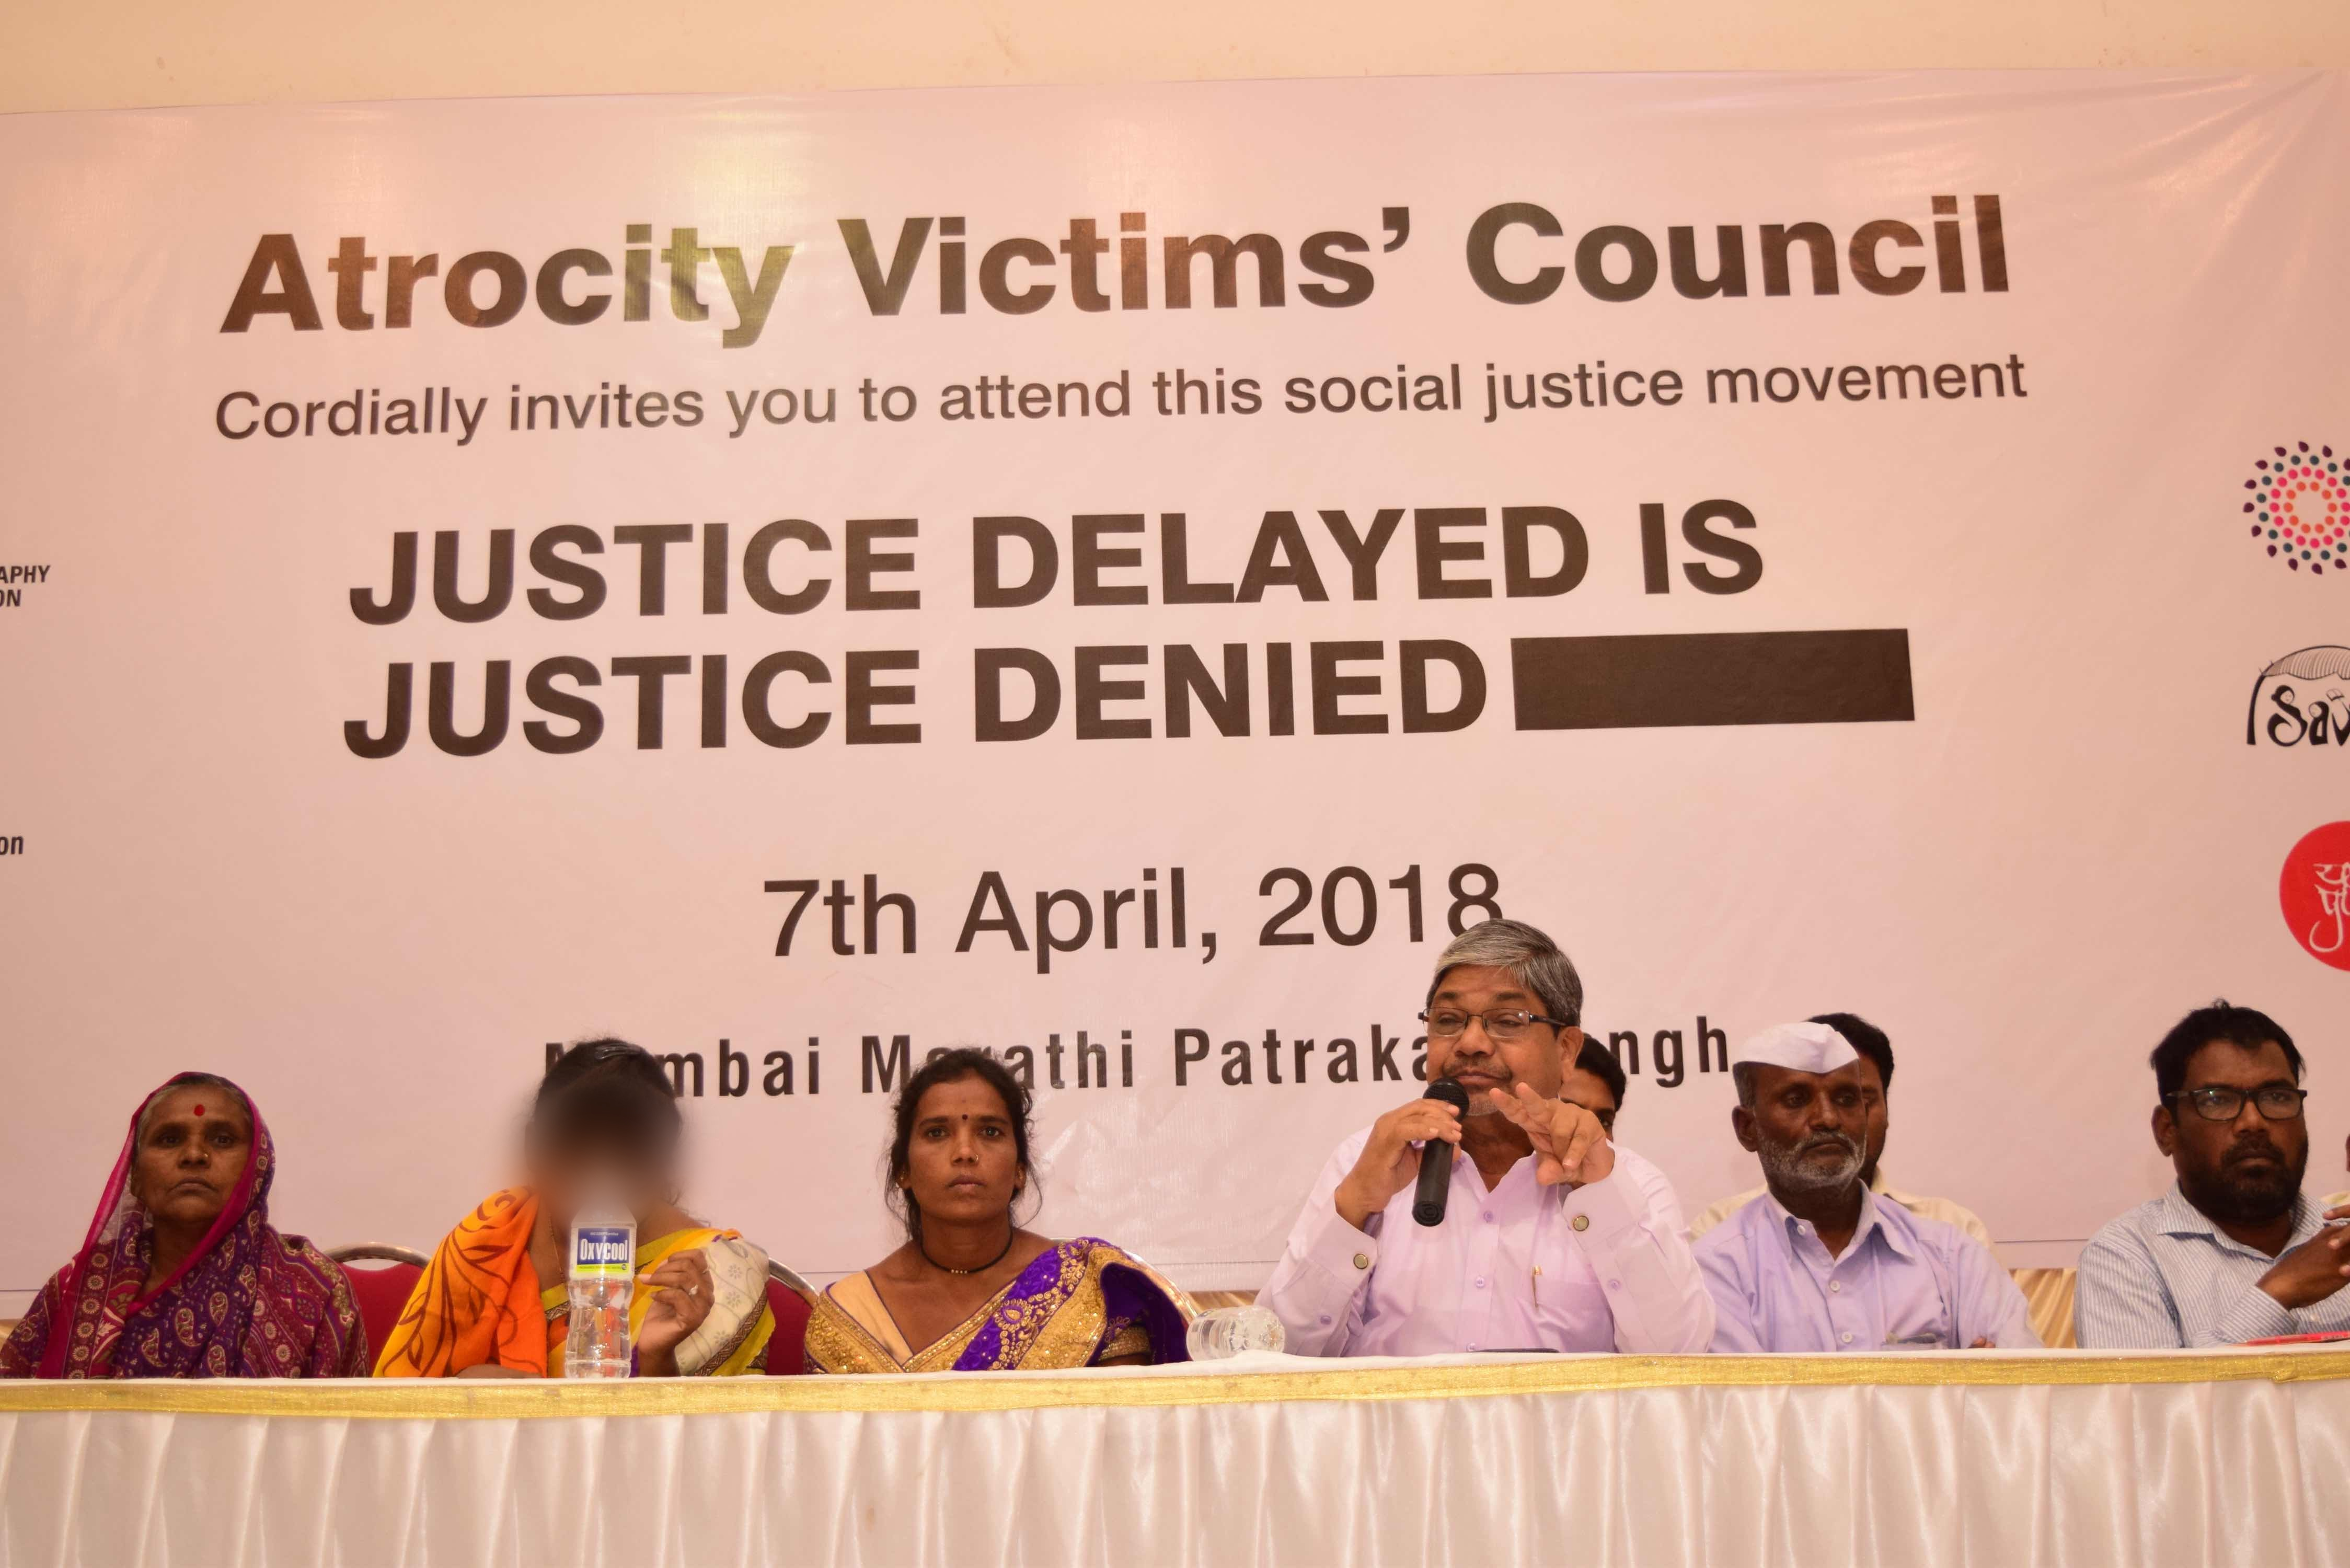 Victims of caste atrocity speak at the 'caste victims' council' organized in Mumbai. Credit: Aparna Olwe